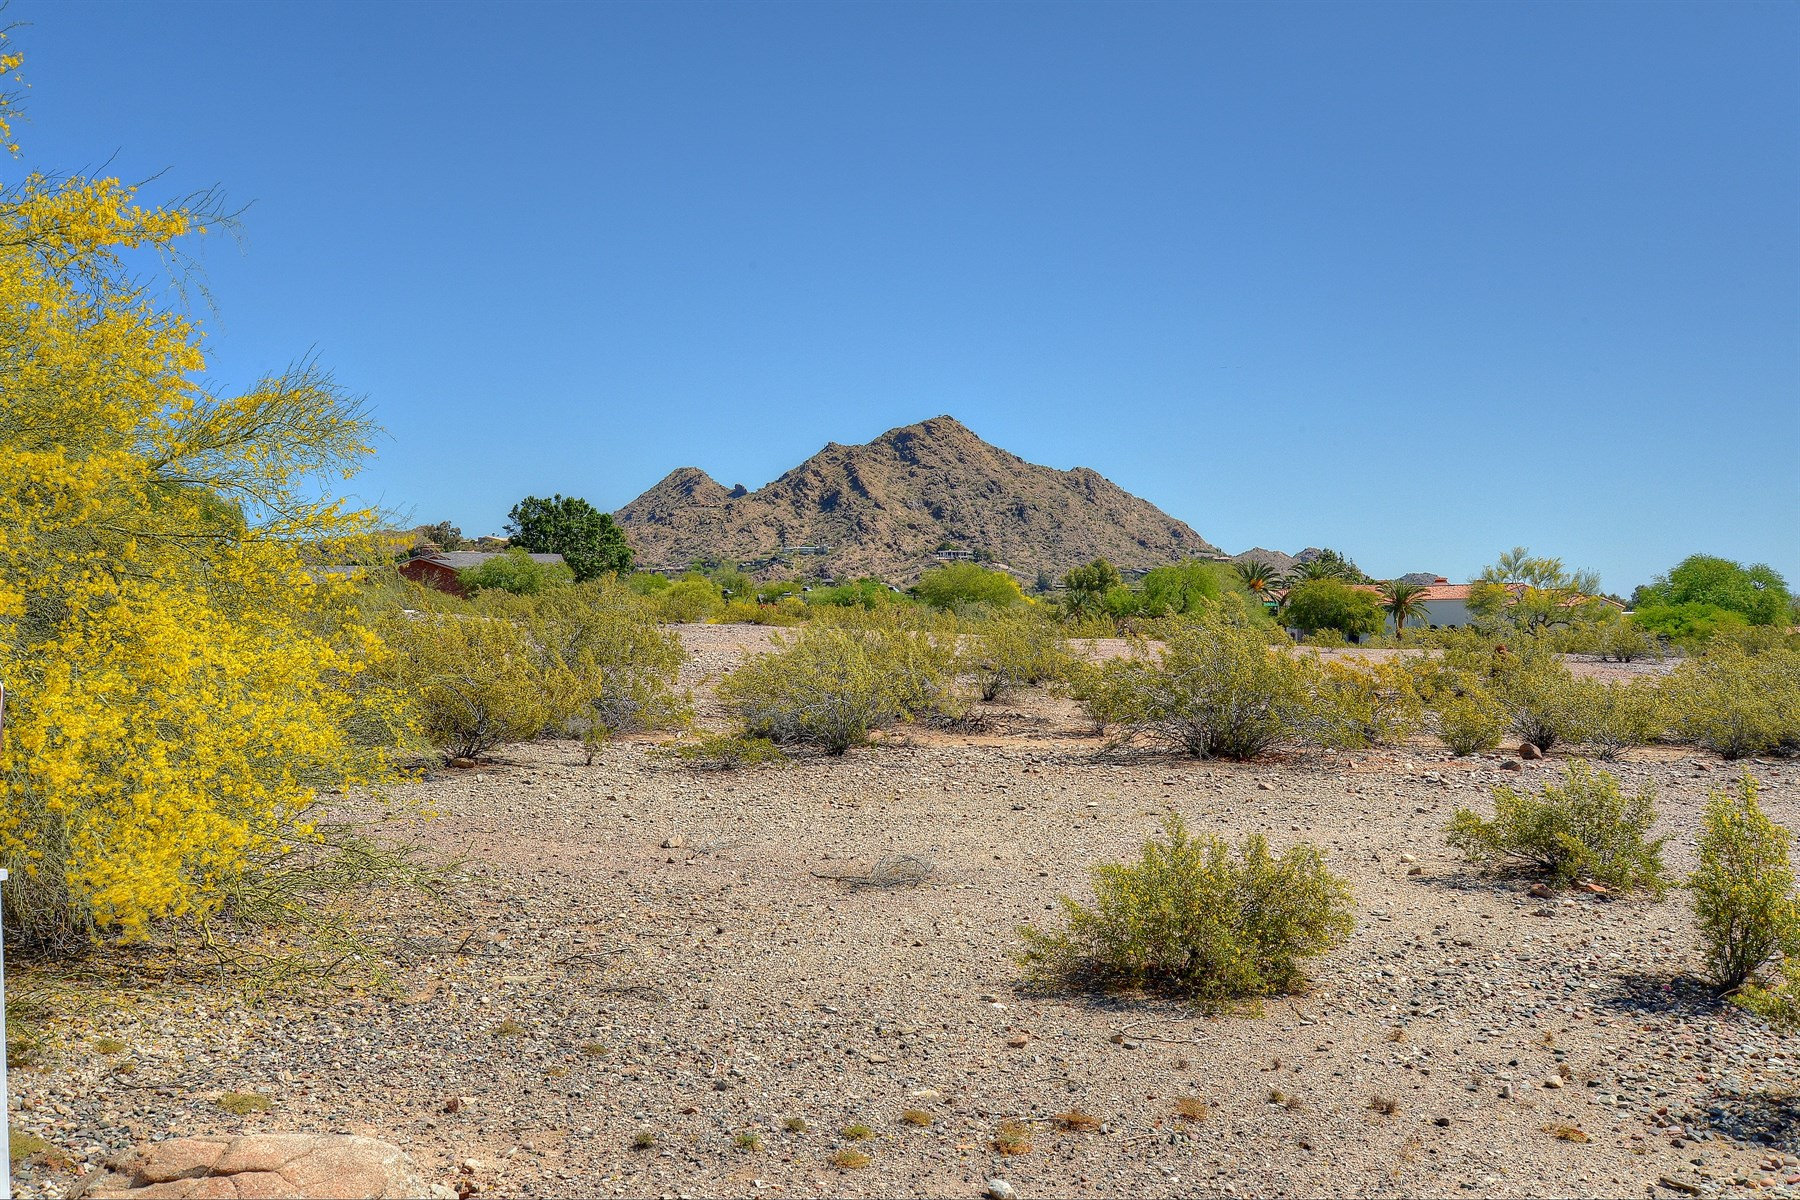 Đất đai vì Bán tại Beautiful 3+ acre lot located in the heart of Paradise Valley 6819 N 46th St 1 Paradise Valley, Arizona, 85253 Hoa Kỳ